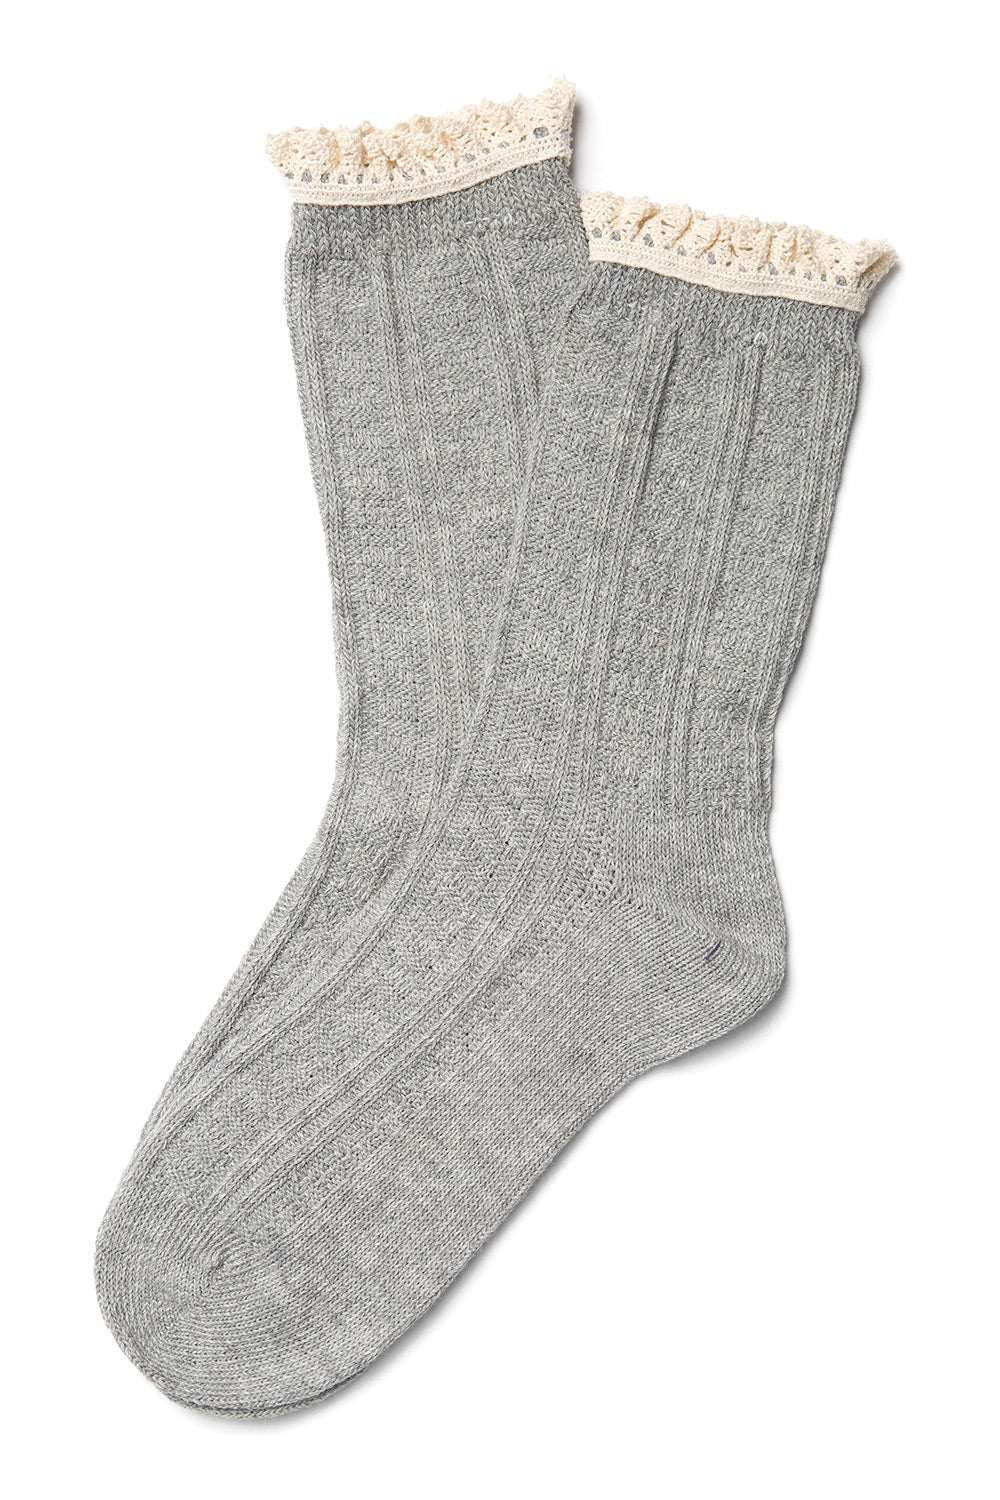 Type 2 Gray Days Socks